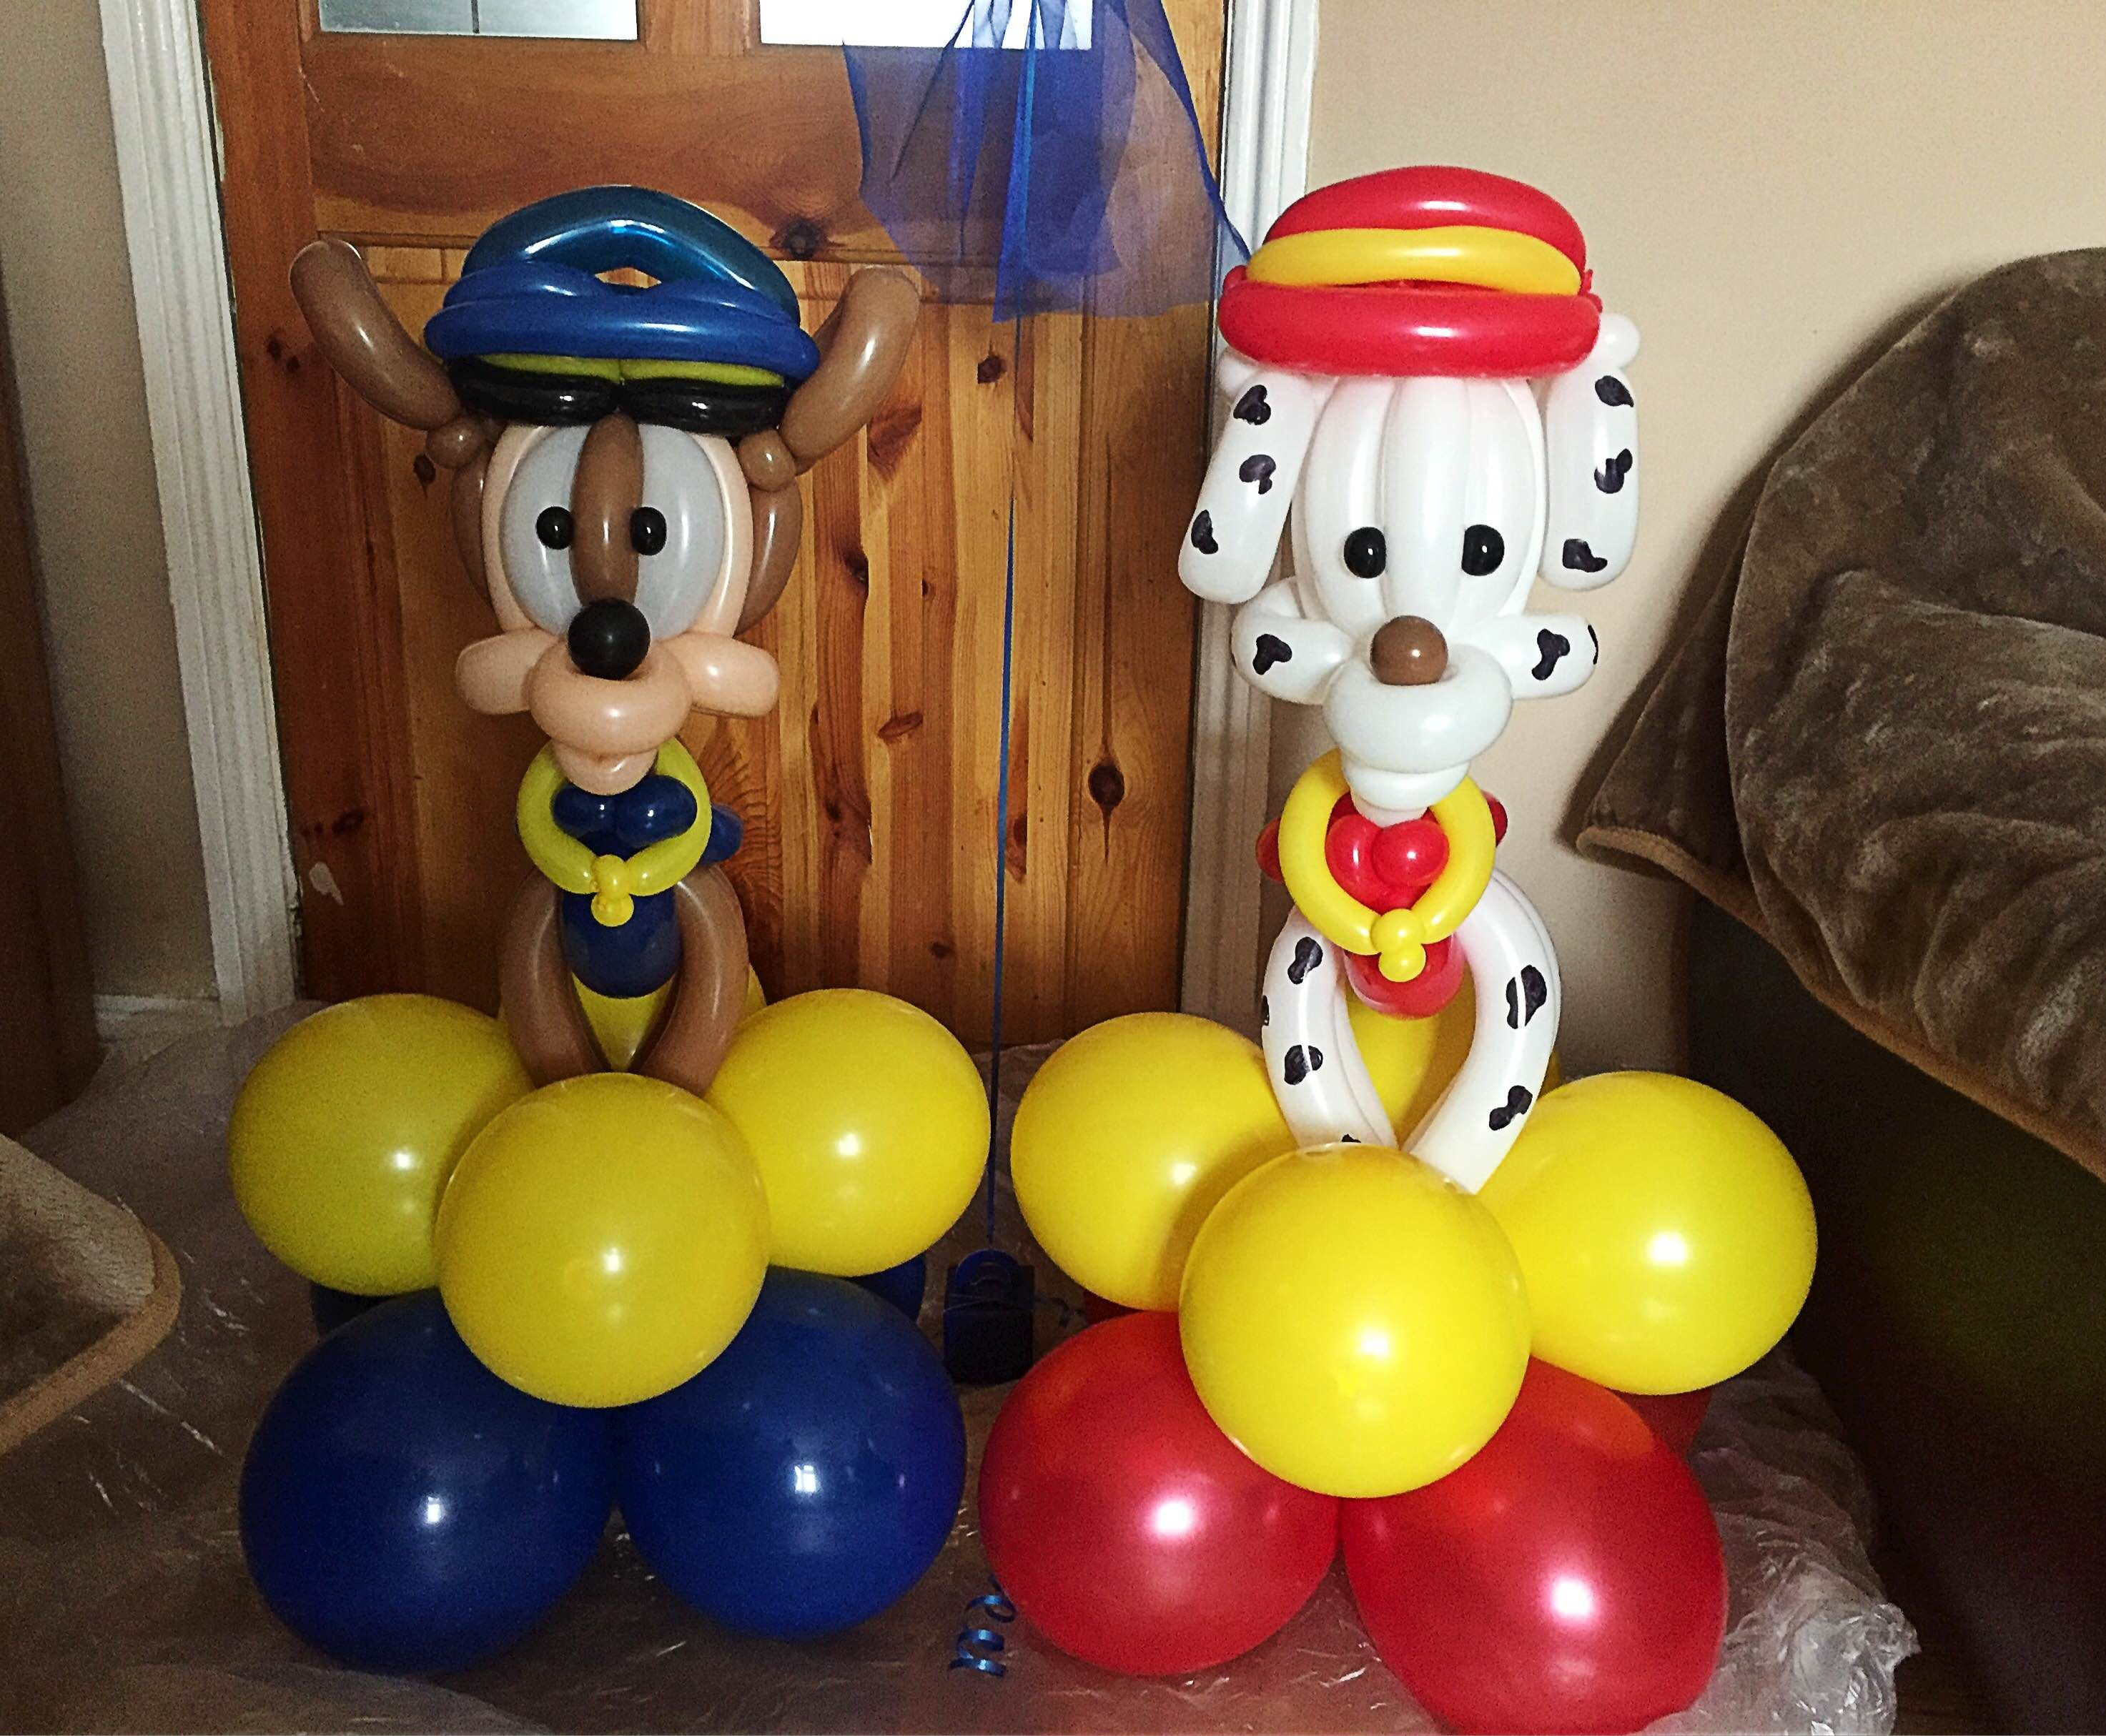 Paw patrol dogs by sonia s balloons and venue decor